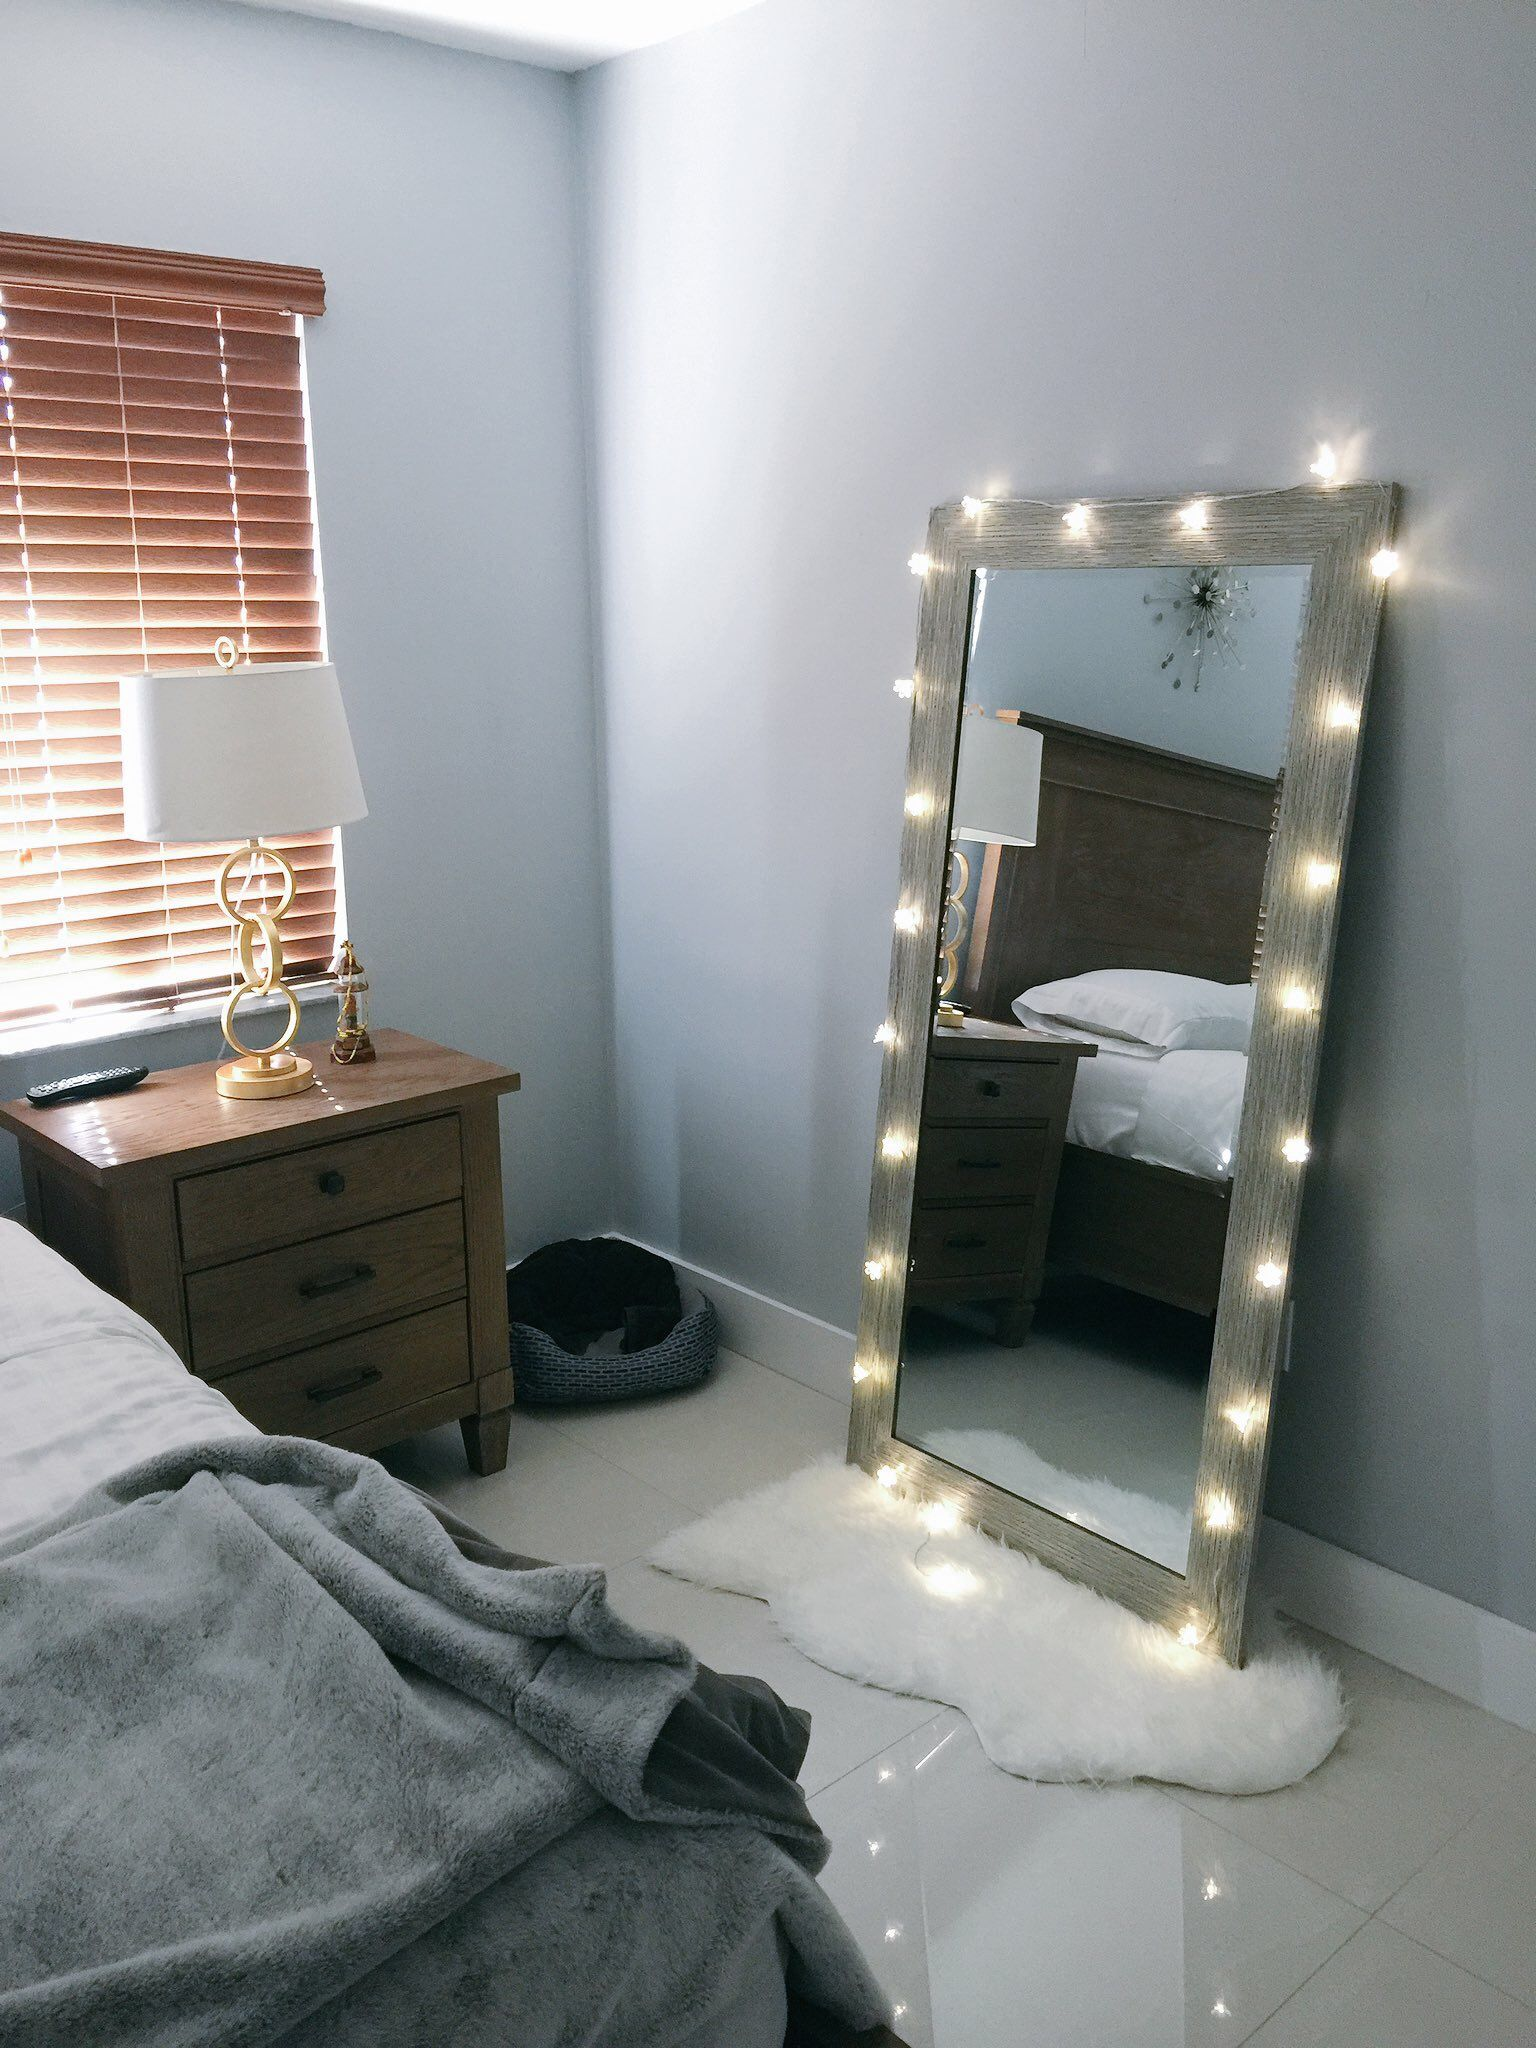 Pinterest vivaciouslyv instagram gute ideen for Standing mirror for bedroom